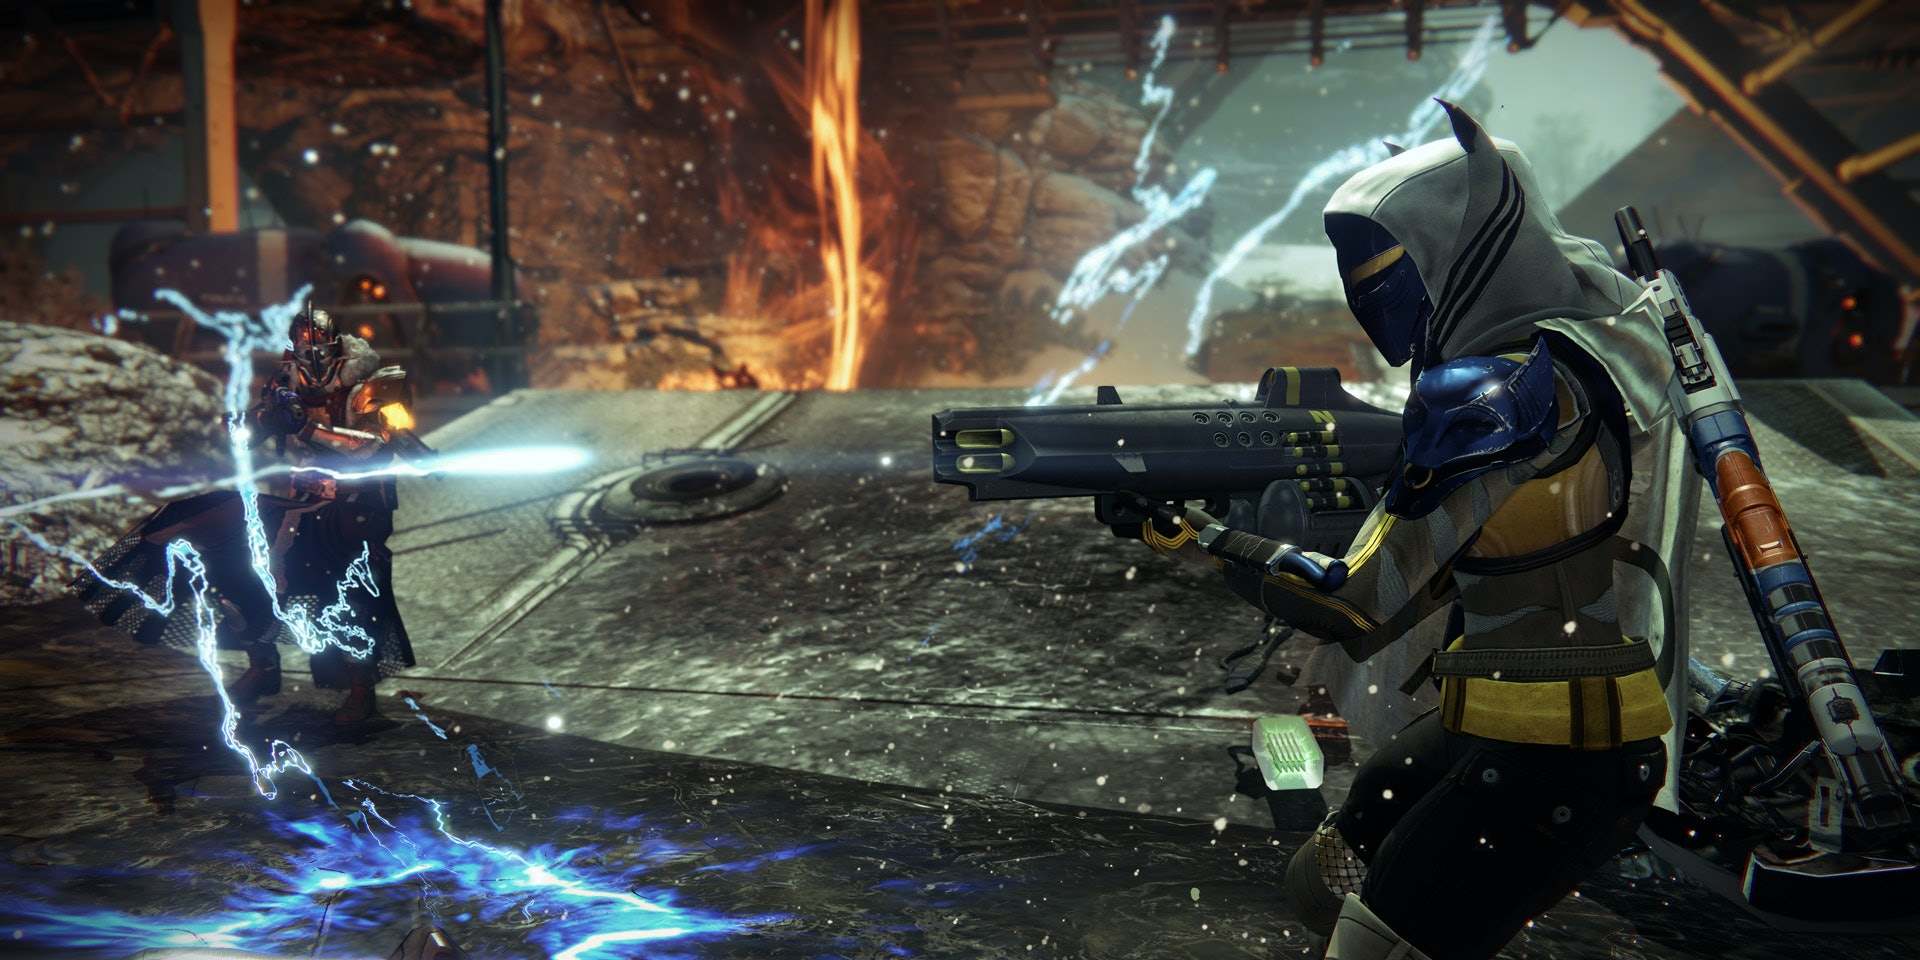 With 'Rise of Iron', Bungie wants to finally fully embrace Artifacts as a real game changer.